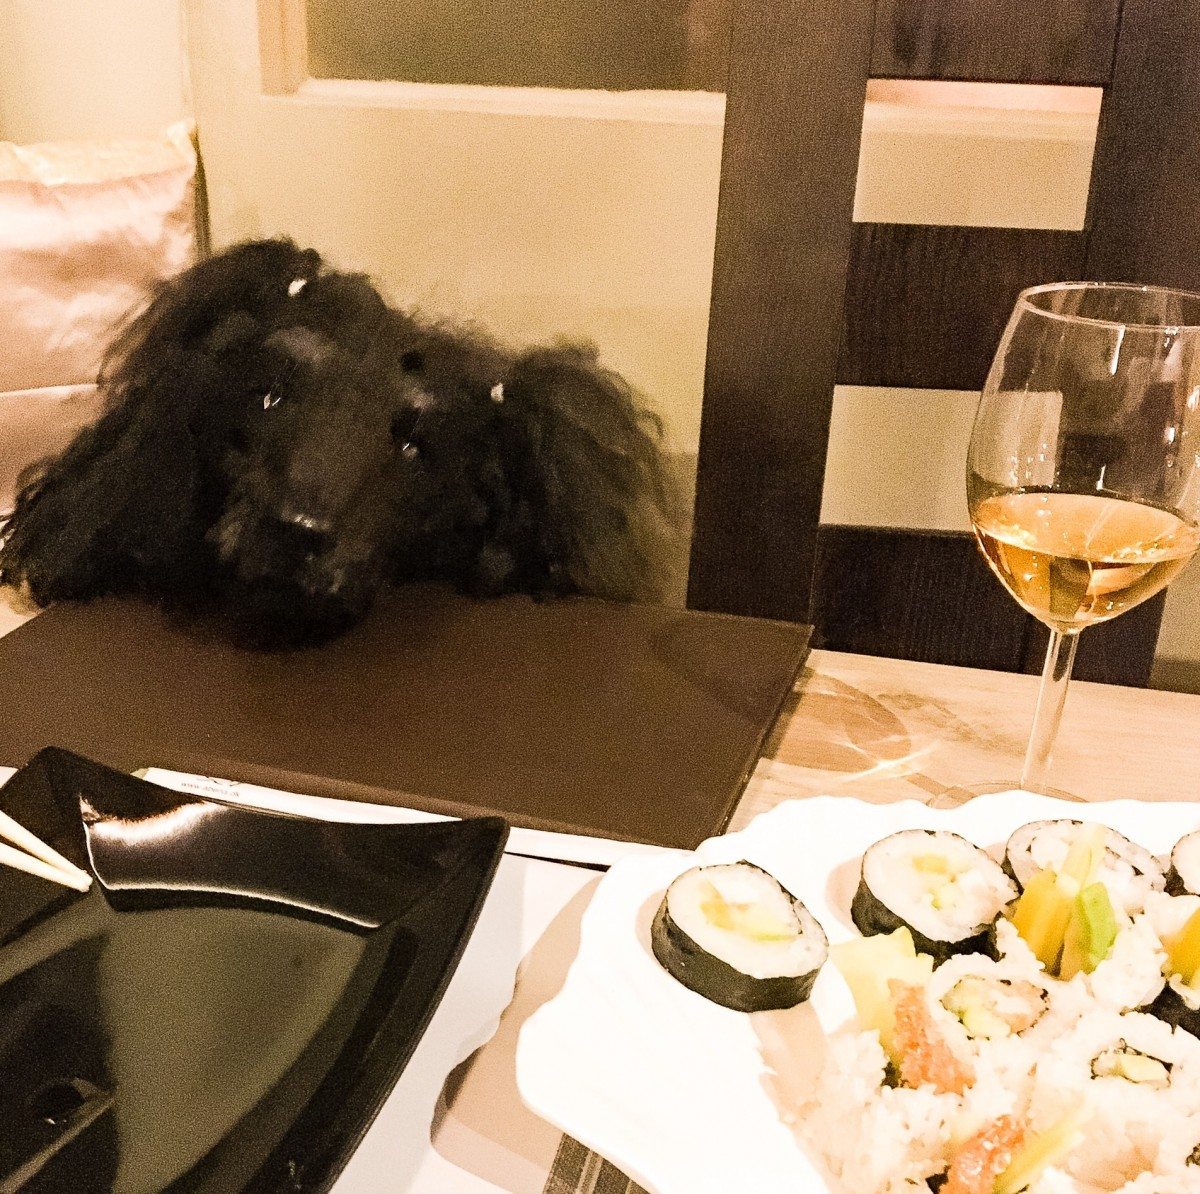 The law: dogs in restaurants.